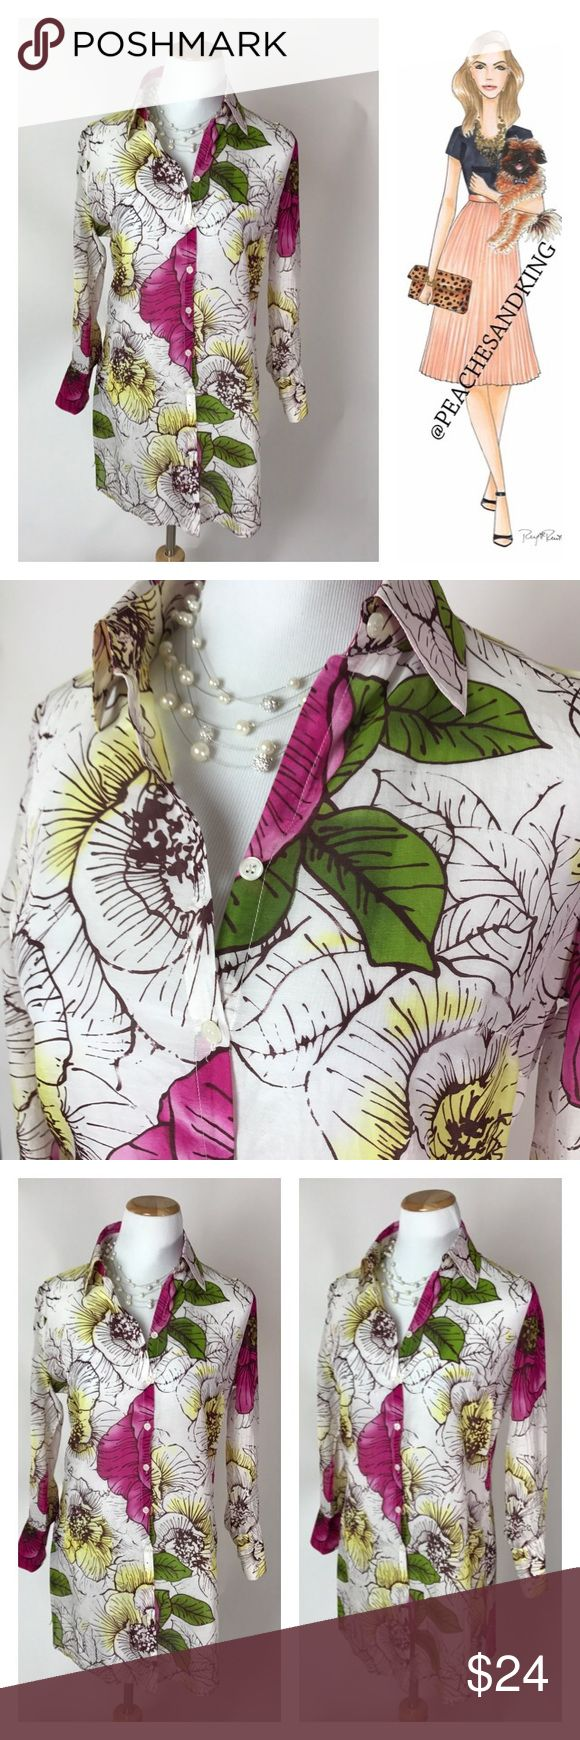 Beautiful Kenar Floral Button Down Tunic Size 10 This listing is for a beautiful Kenar Floral Button-down Tunic Top in a Size 10,  •Semi sheer  •fabric 30% silk 70% cotton •wash instructions - Dry clean only •Top will be delivered gently steamed and beautifully wrapped in tissue  🍑We strive to ship out the same day if ordered before noon and the next day if after.  Follow us on Instagram @peachesandking 🍑  🛍Bundle & save!  10% off 2 or more items! Kenar Tops Tunics